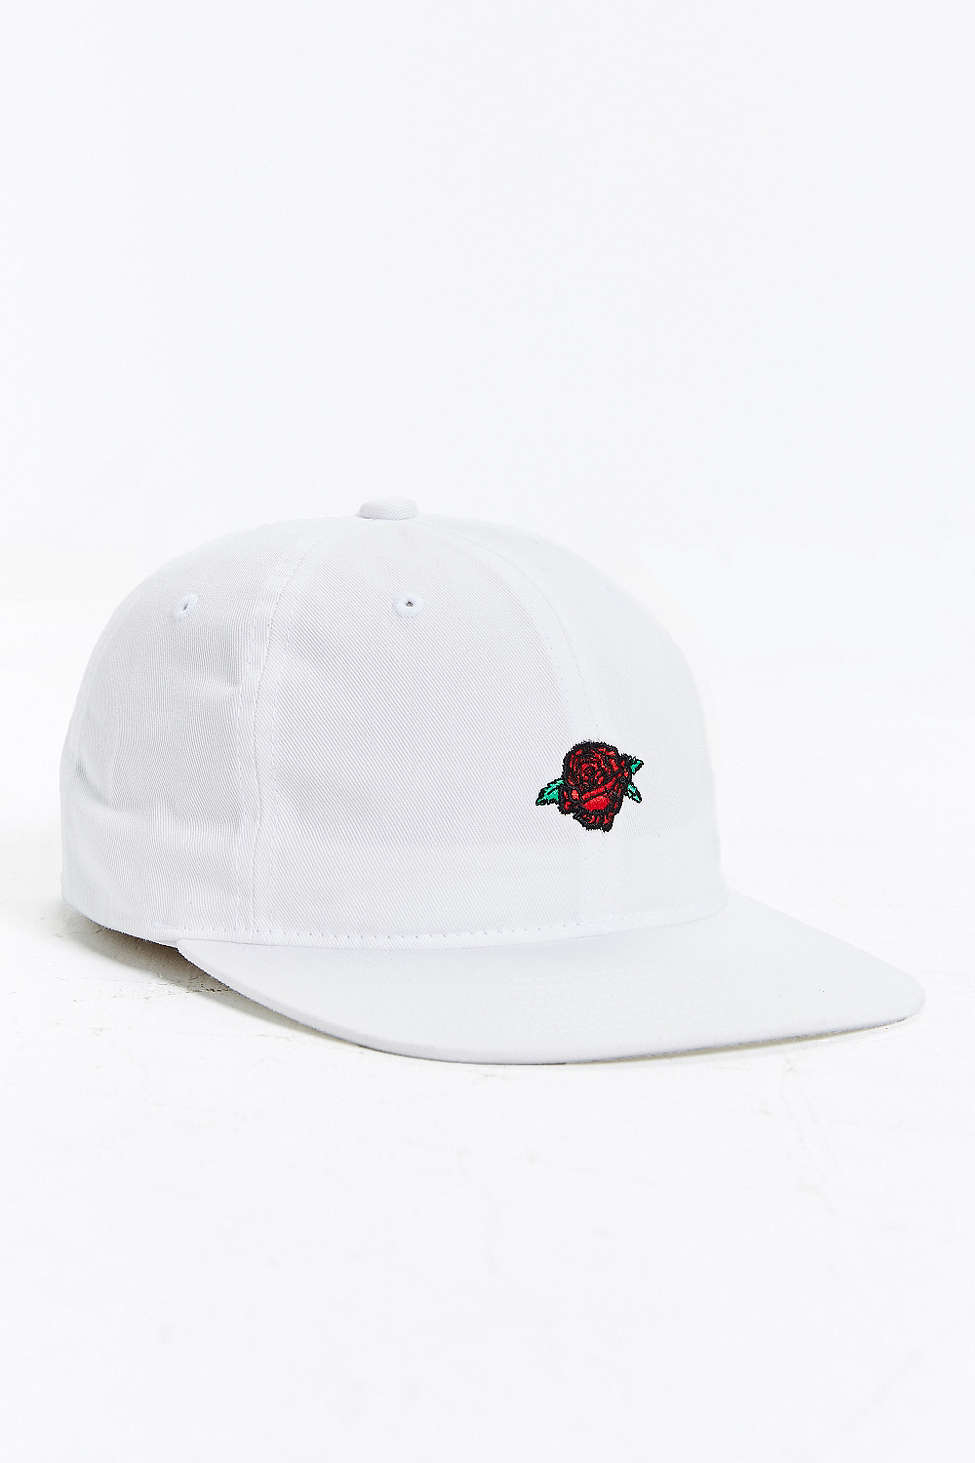 c1e101a1763 Lyst - Obey Rose Strapback Hat in White for Men